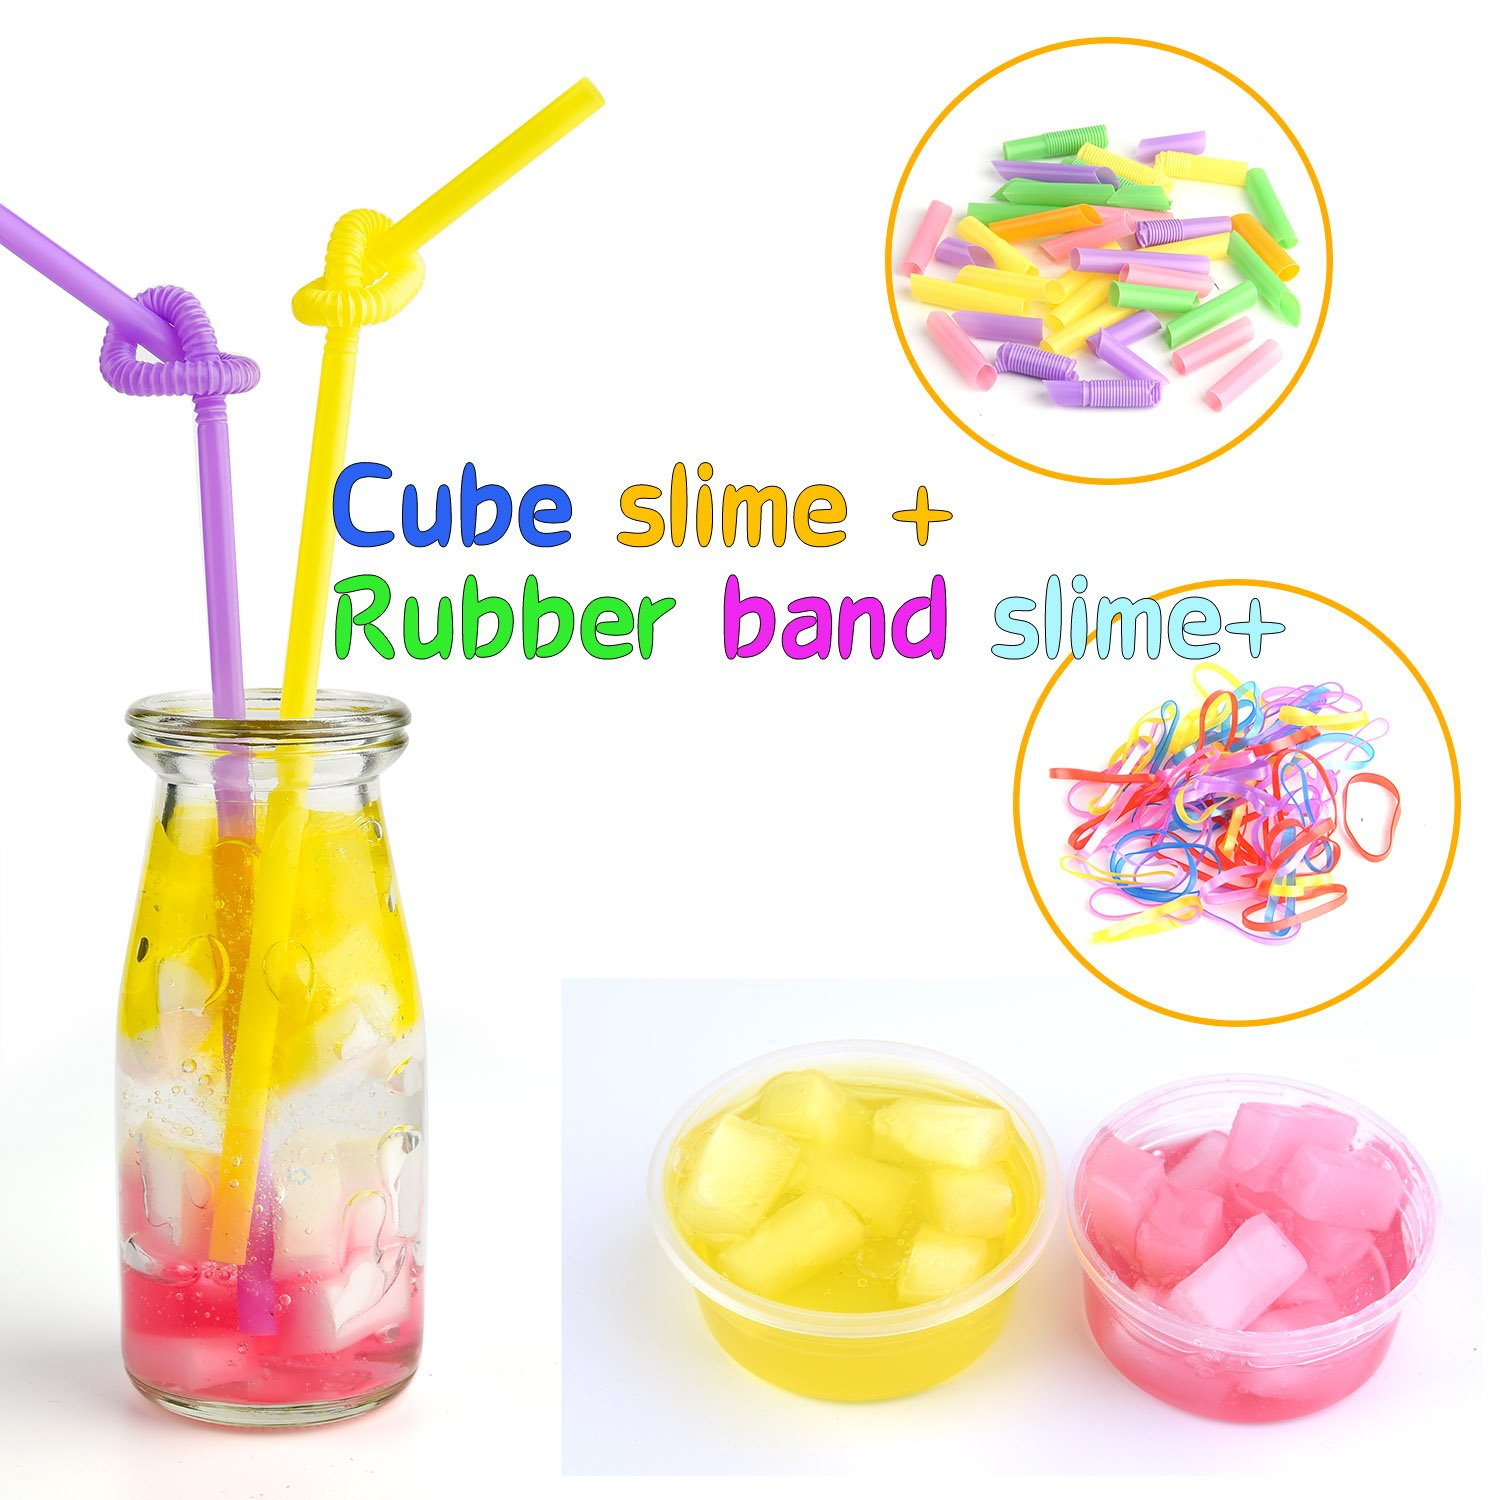 Rubber Band Net Sugar Paper Fishbowl Beads Slices Sponge Cube Imitation Gold Leaf Shell Confetti FEPITO 84 Pack Slime Supplies Kit Including Foam Balls Contain No Slime